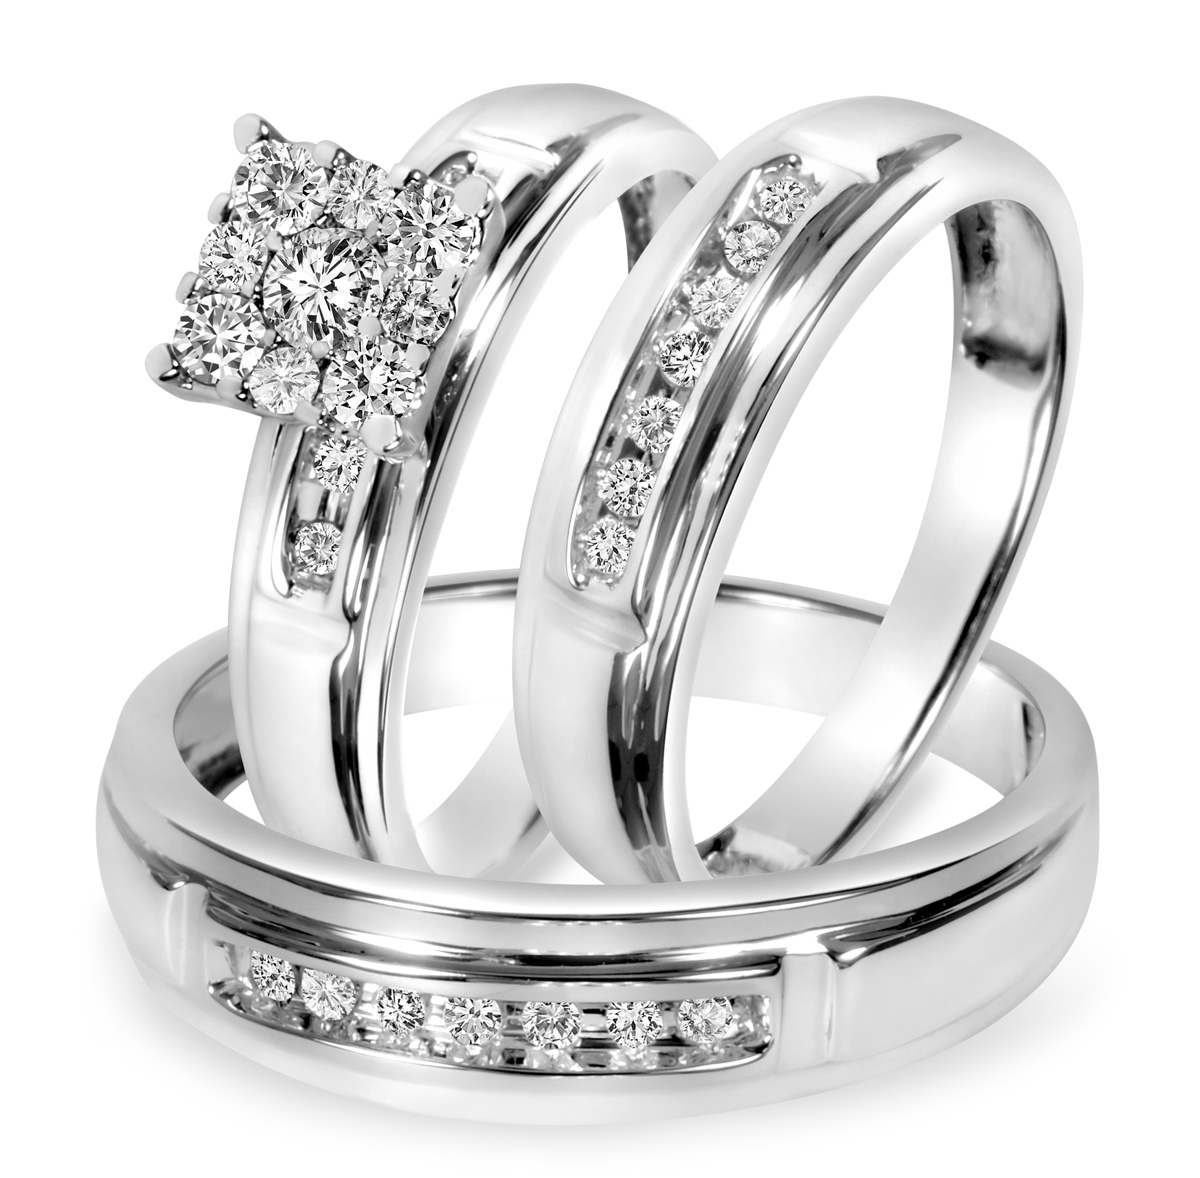 tw diamond trio matching wedding ring set 10k white gold my trio rings bt518w10k - Engagement And Wedding Ring Sets